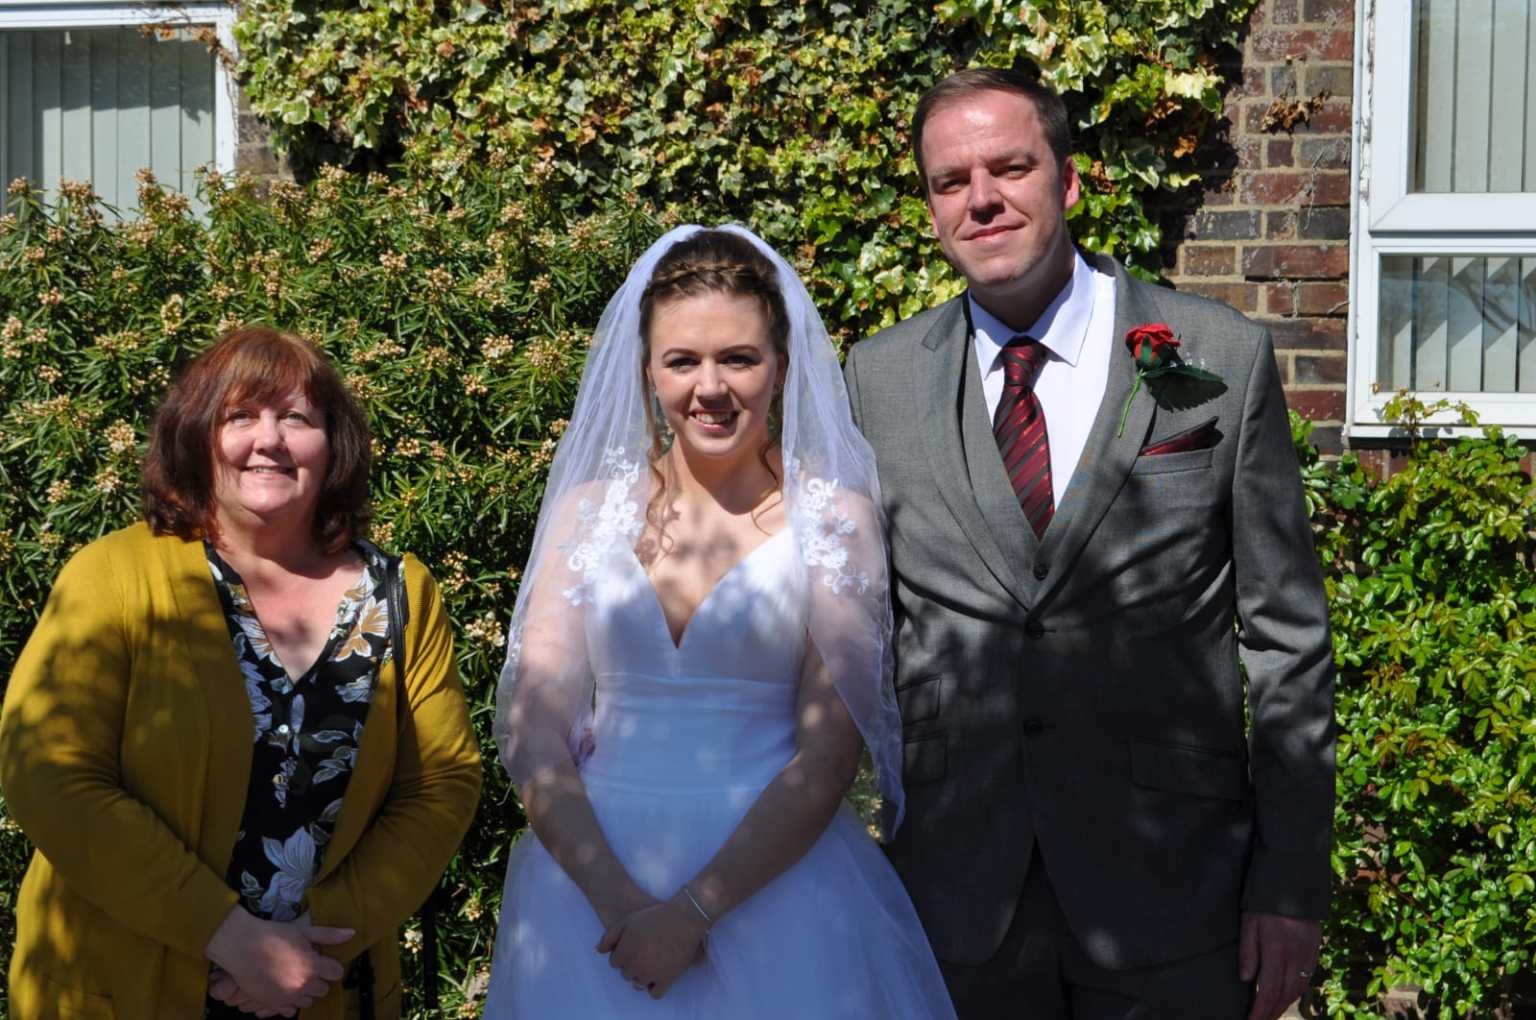 Bride and groom with a guest at a COVID wedding